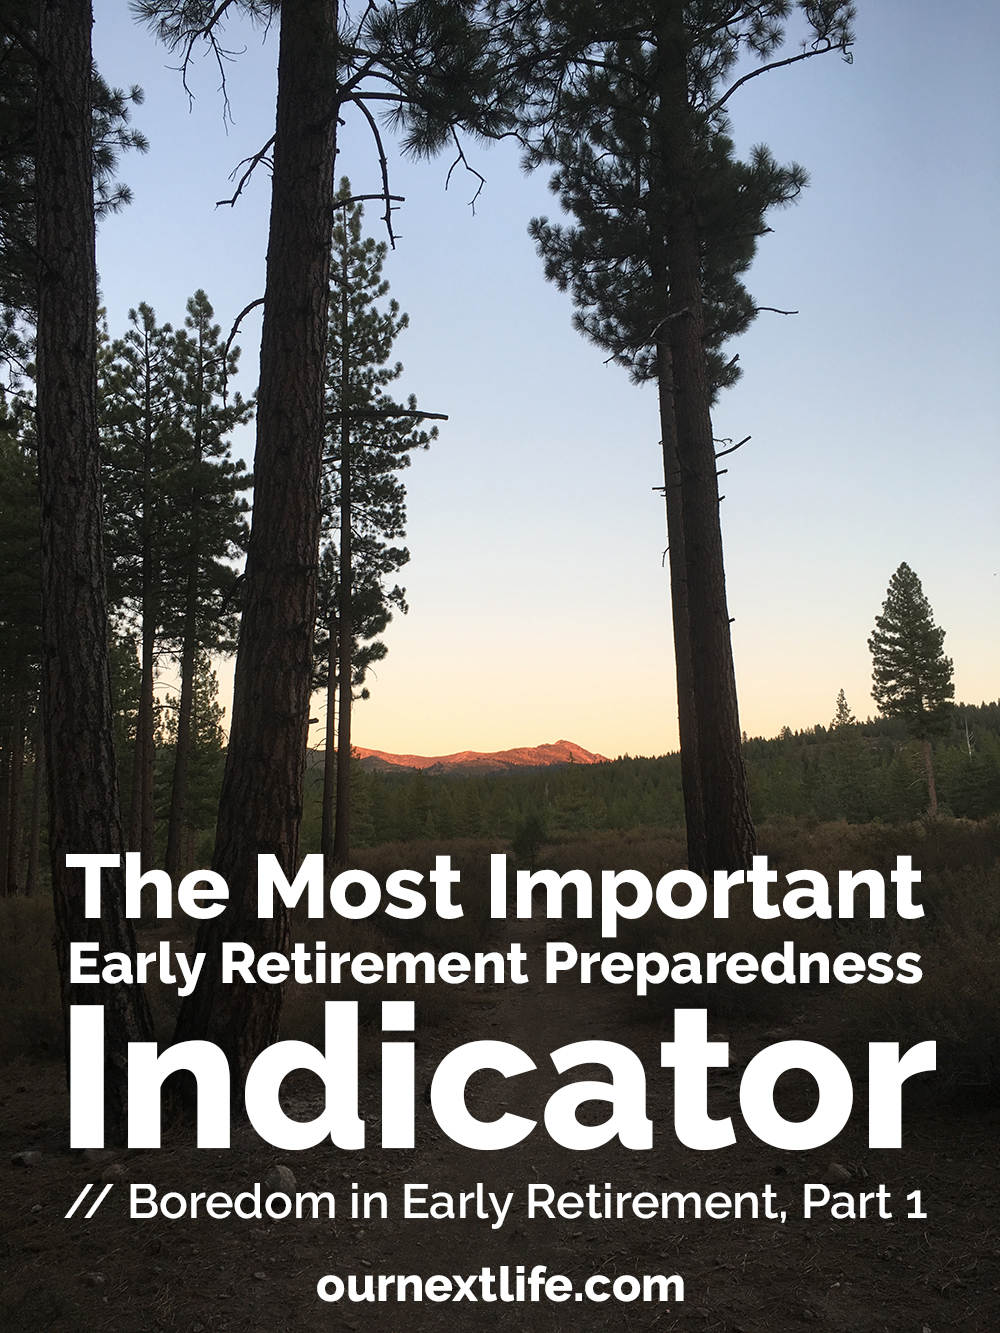 The most important early retirement preparedness indicator // boredom in early retirement, part 1 // Our Next Life // financial independence, FIRE, FI